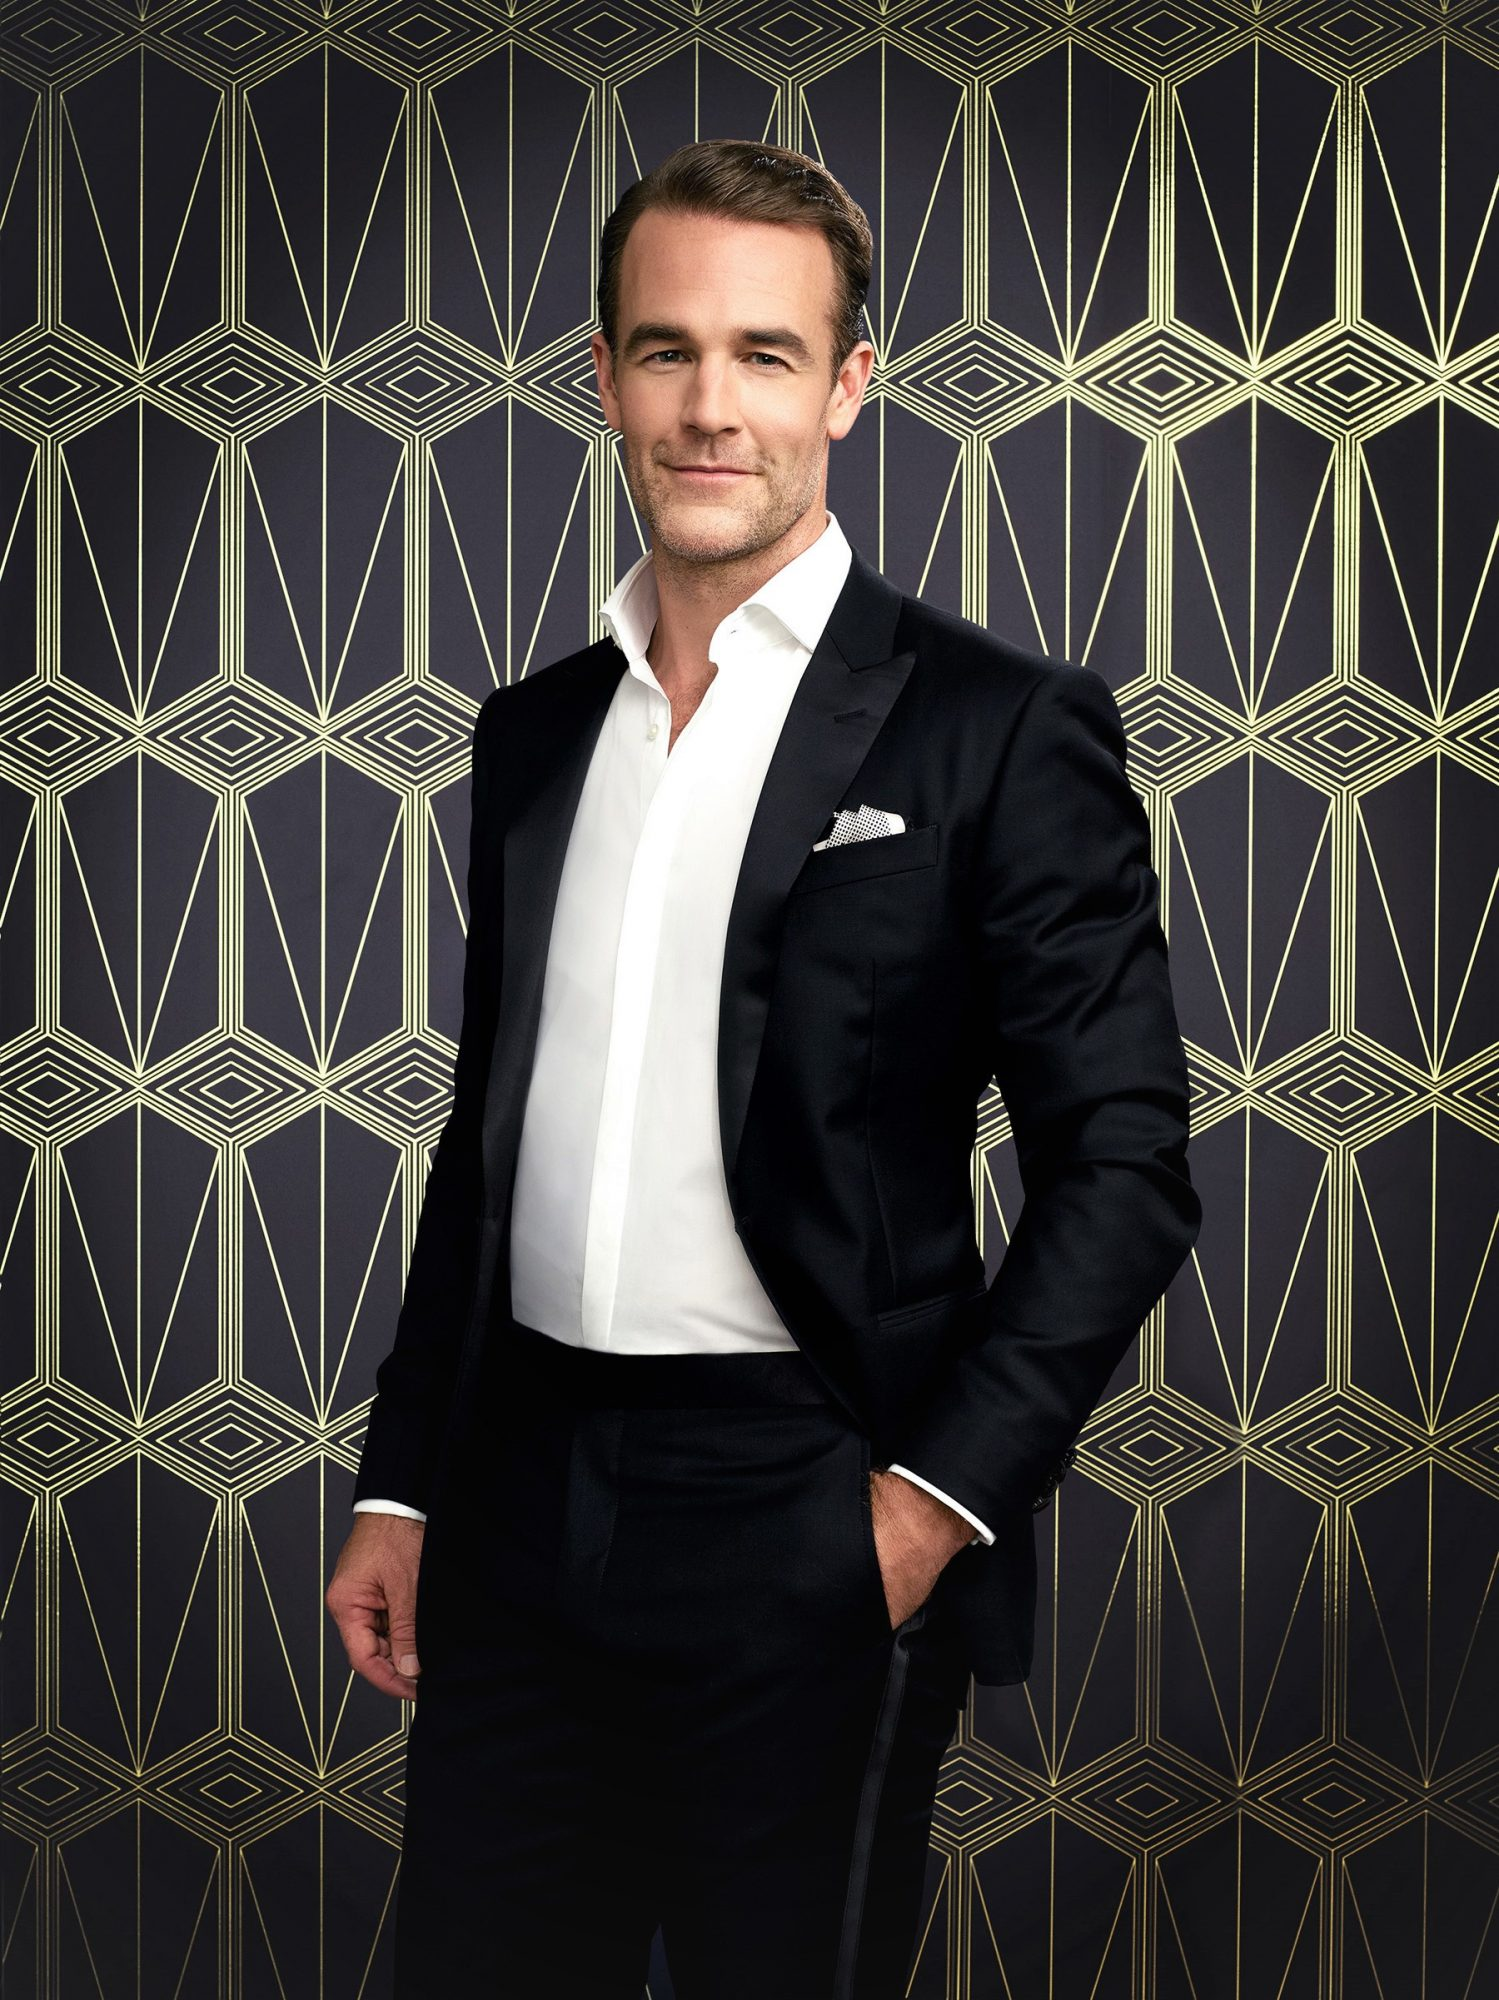 James Van Der Beek Reveals Wife Kimberly Suffered a Miscarriage: 'We Lost the Baby'